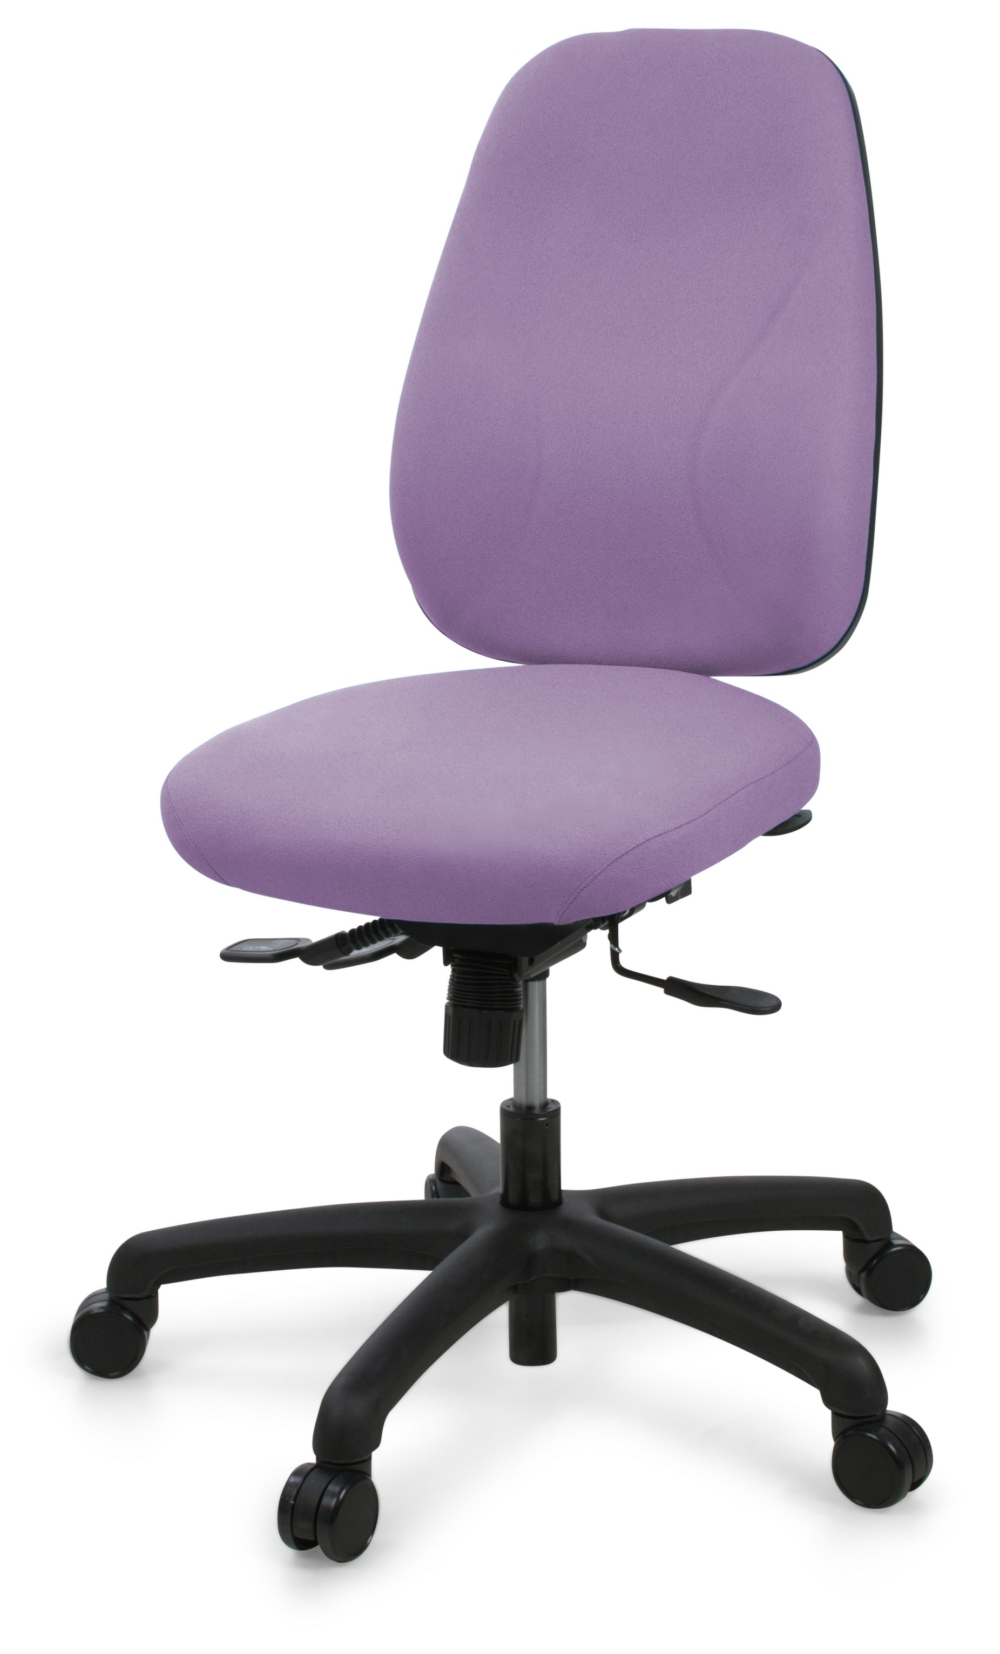 Opera Ergonomic Office Chair - Ergonomic office chair uk